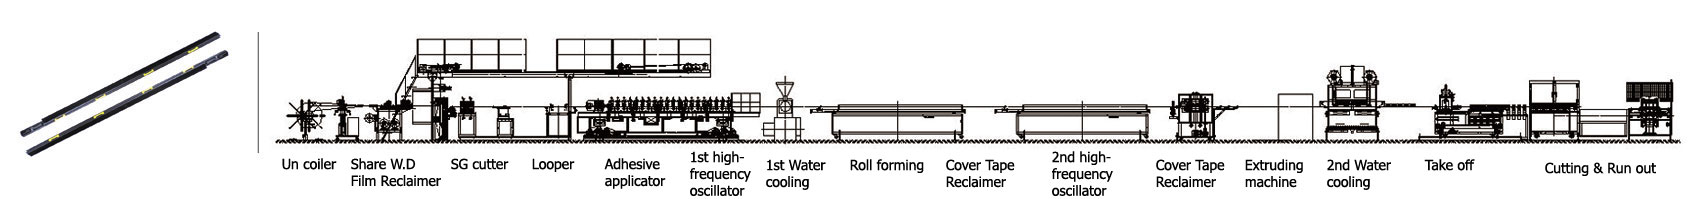 roll forming line layout -3